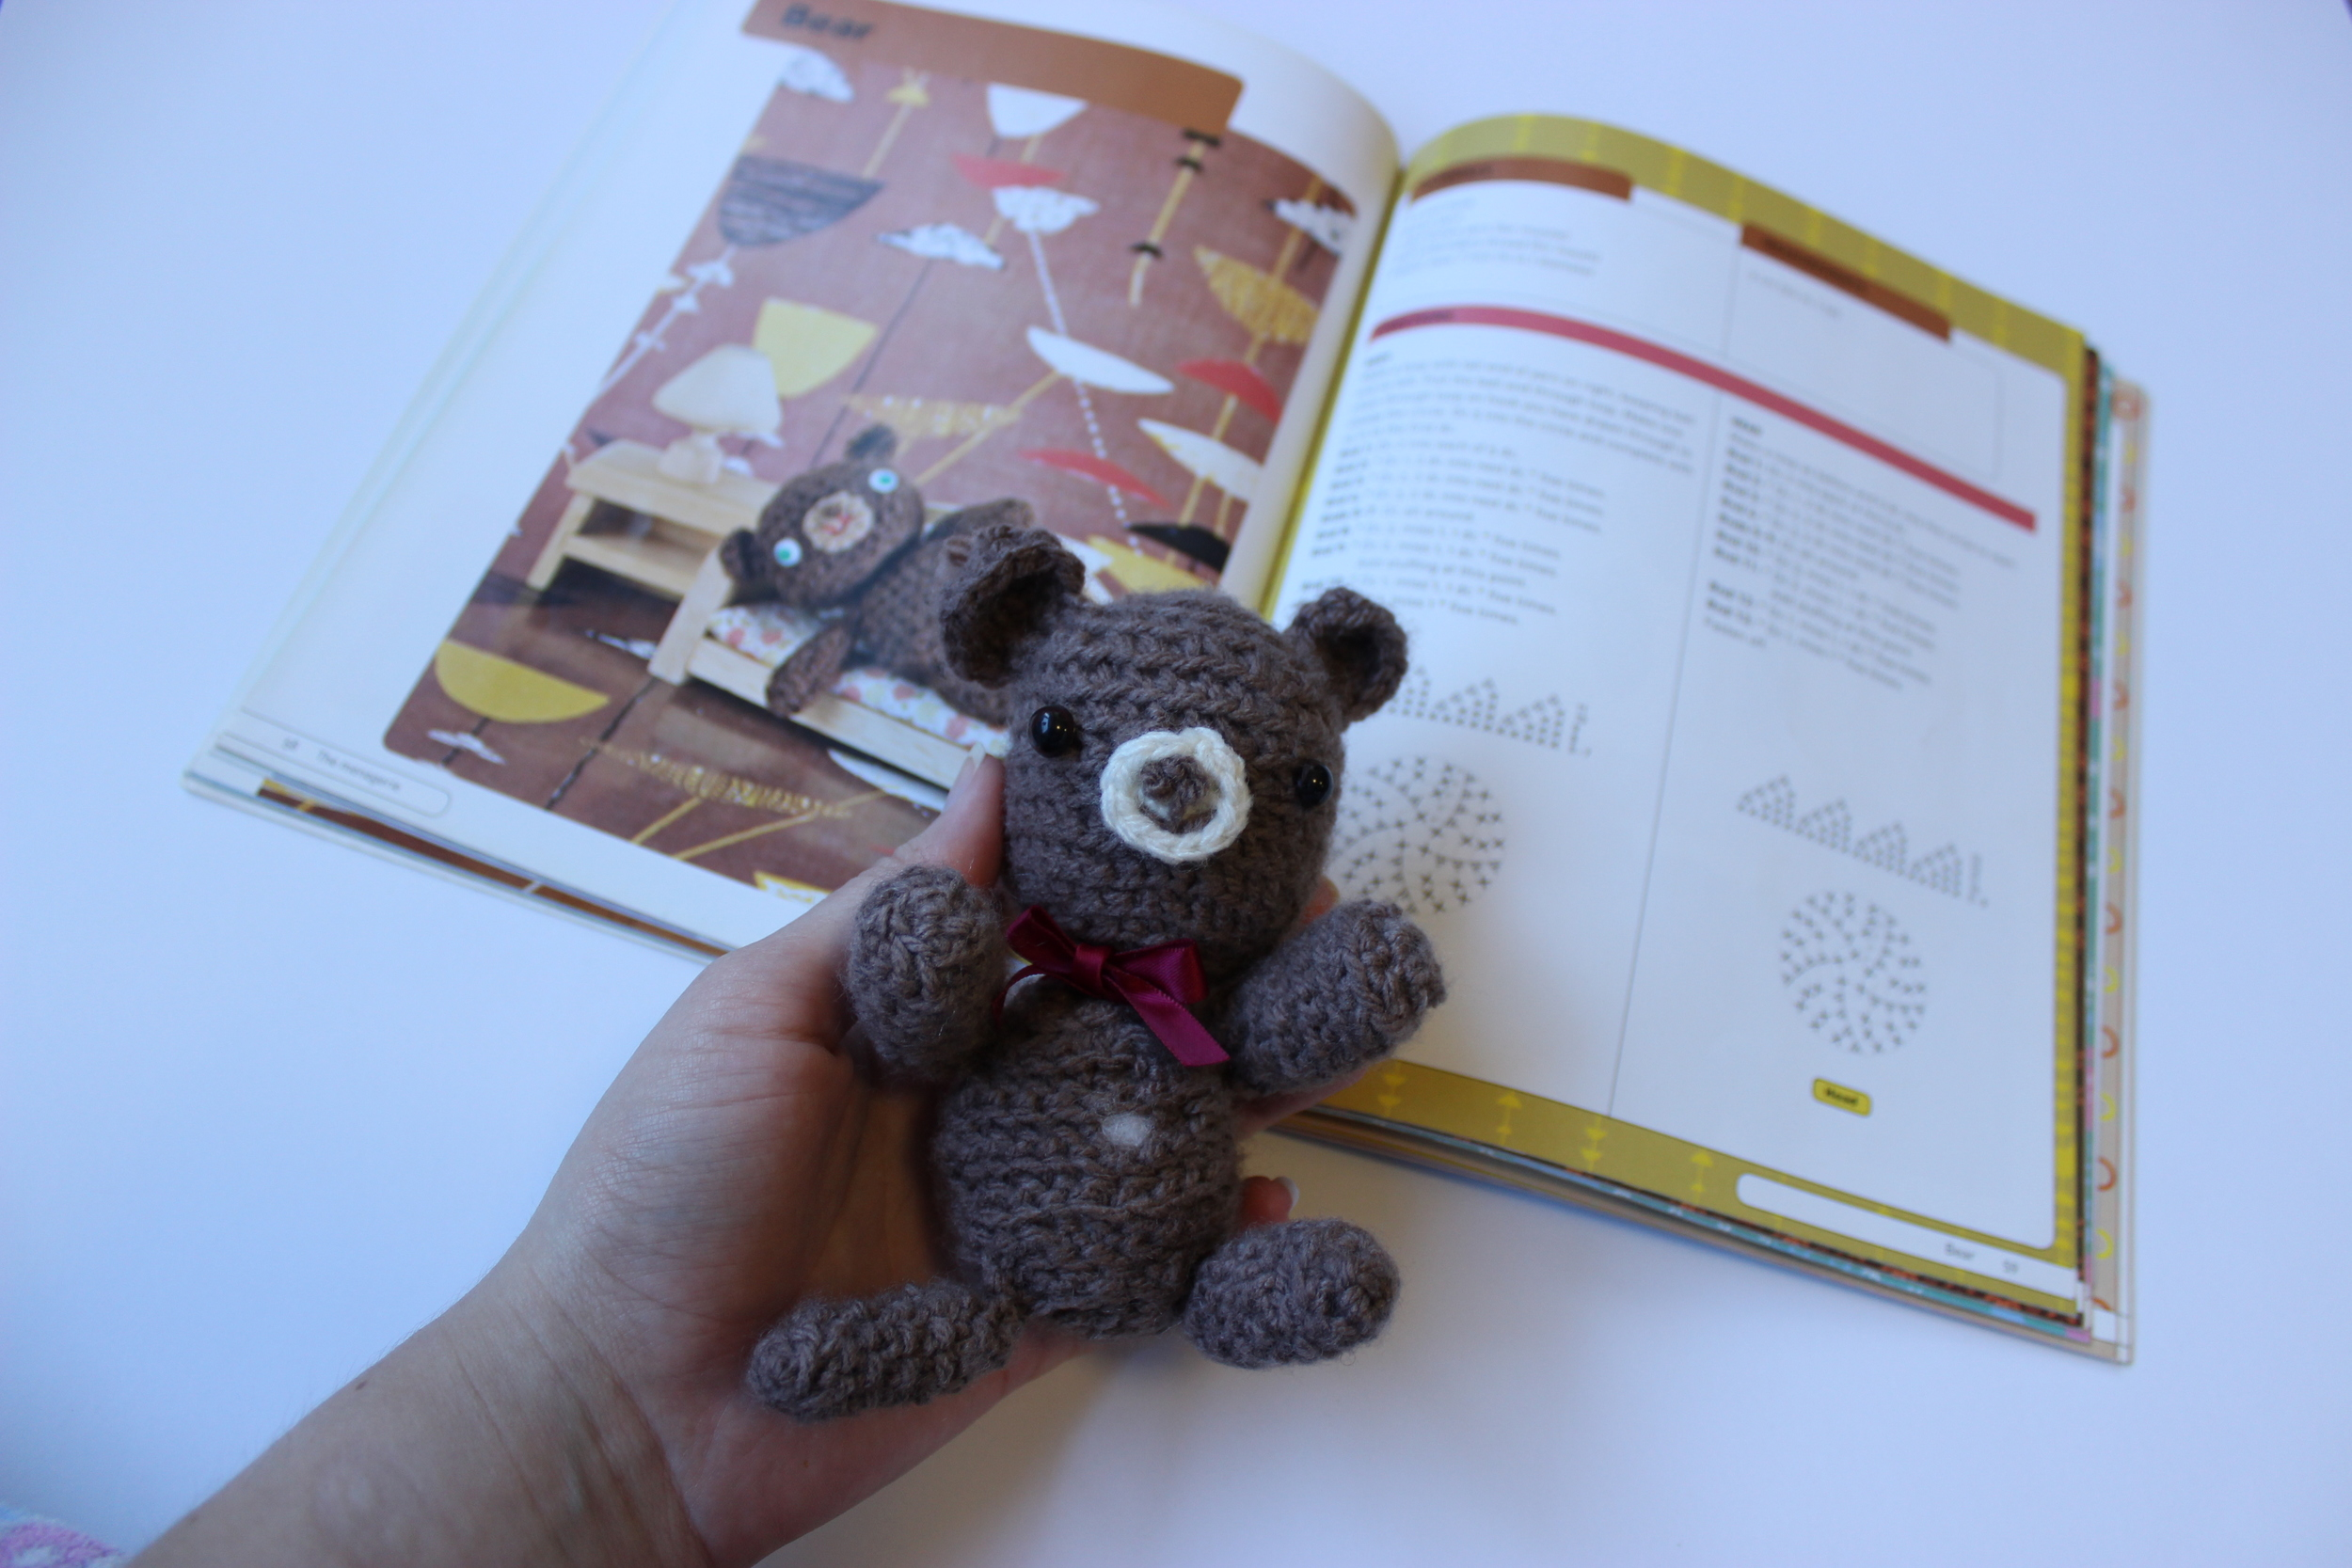 As you can see this pattern book has written instructions as well as diagrams. I am generally a fan of crochet charts, although I'm still unsure how functional it is for amigurumi.